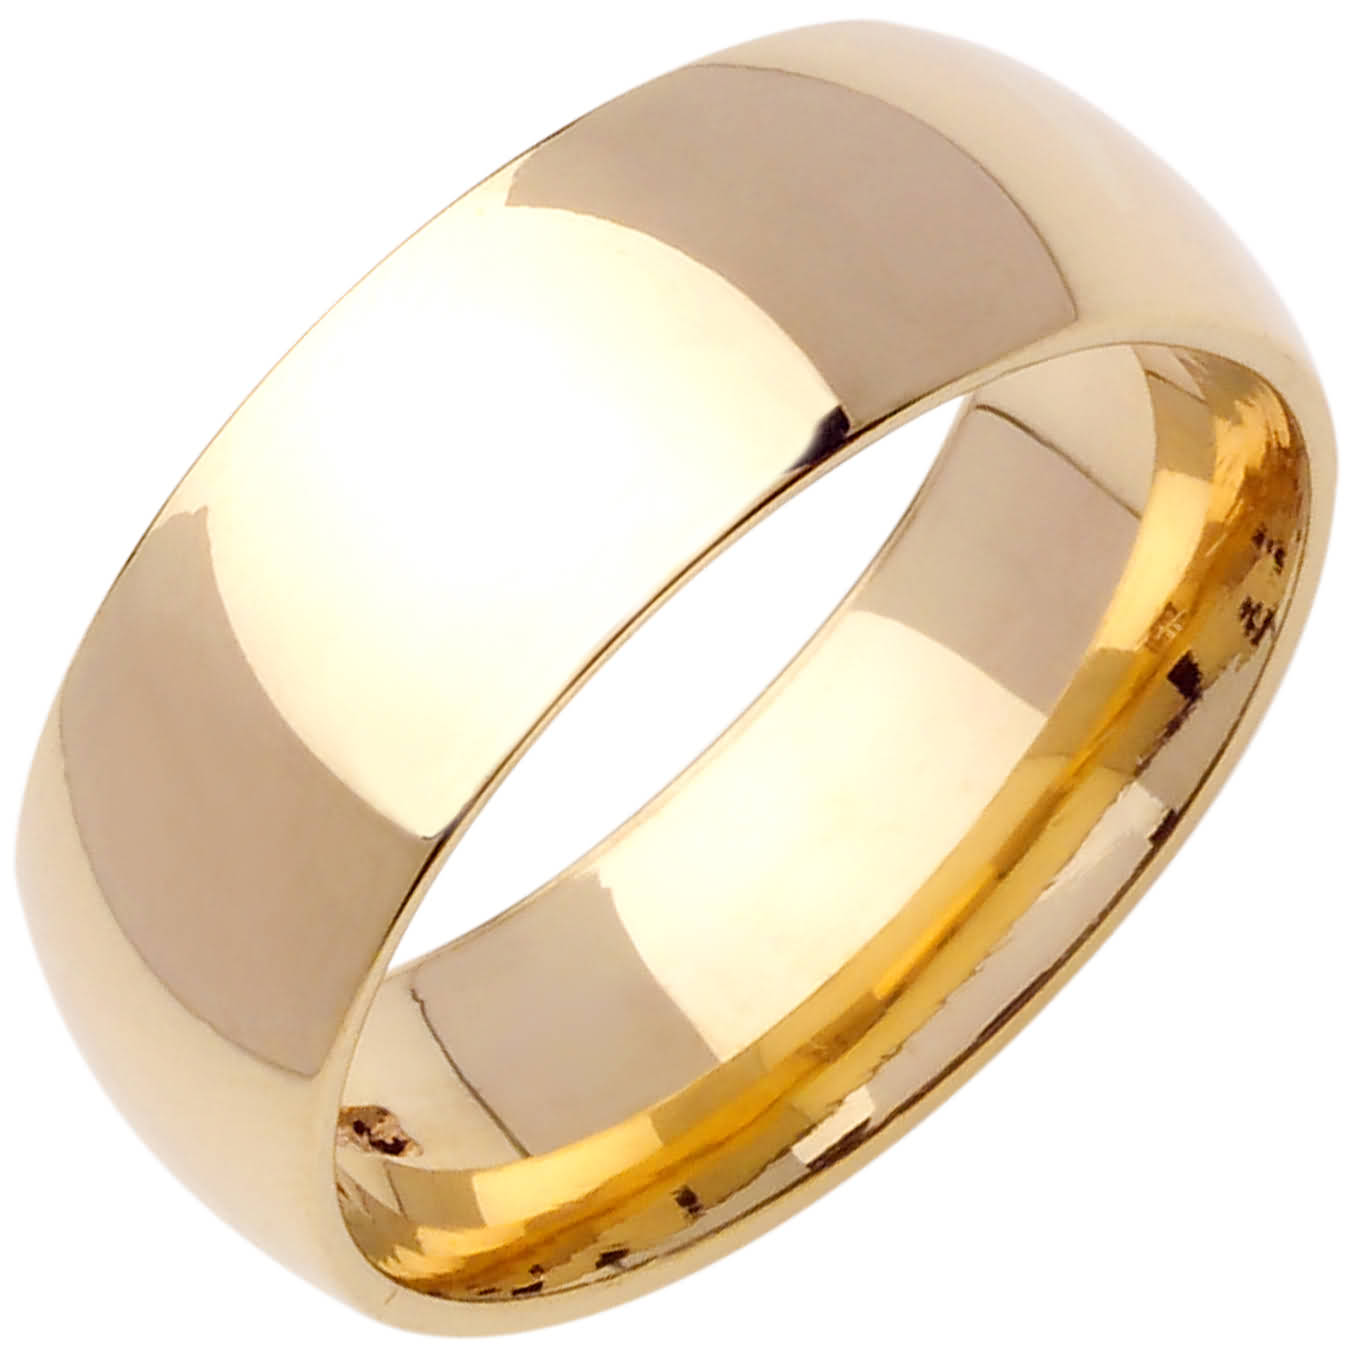 18K Yellow Gold Dome Plain Unisex Comfort Fit Band 8mm